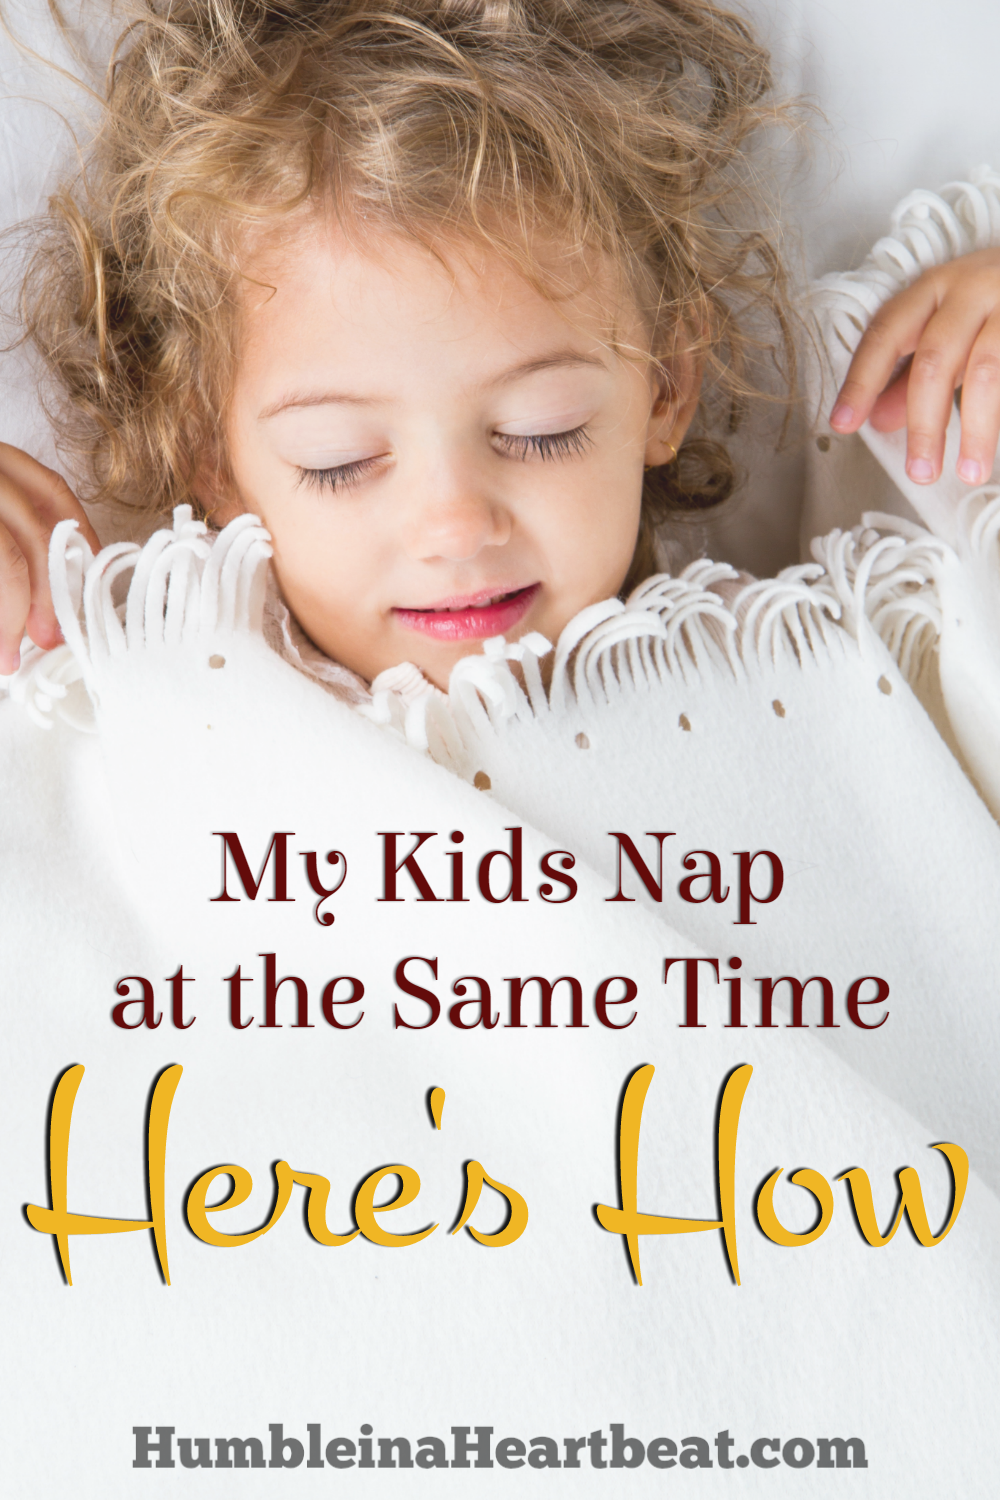 Getting toddlers and babies to take a nap at the same time each day can be tricky if you don't know what you're doing. Here are some things I do each day to make sure my toddlers both take a nap.